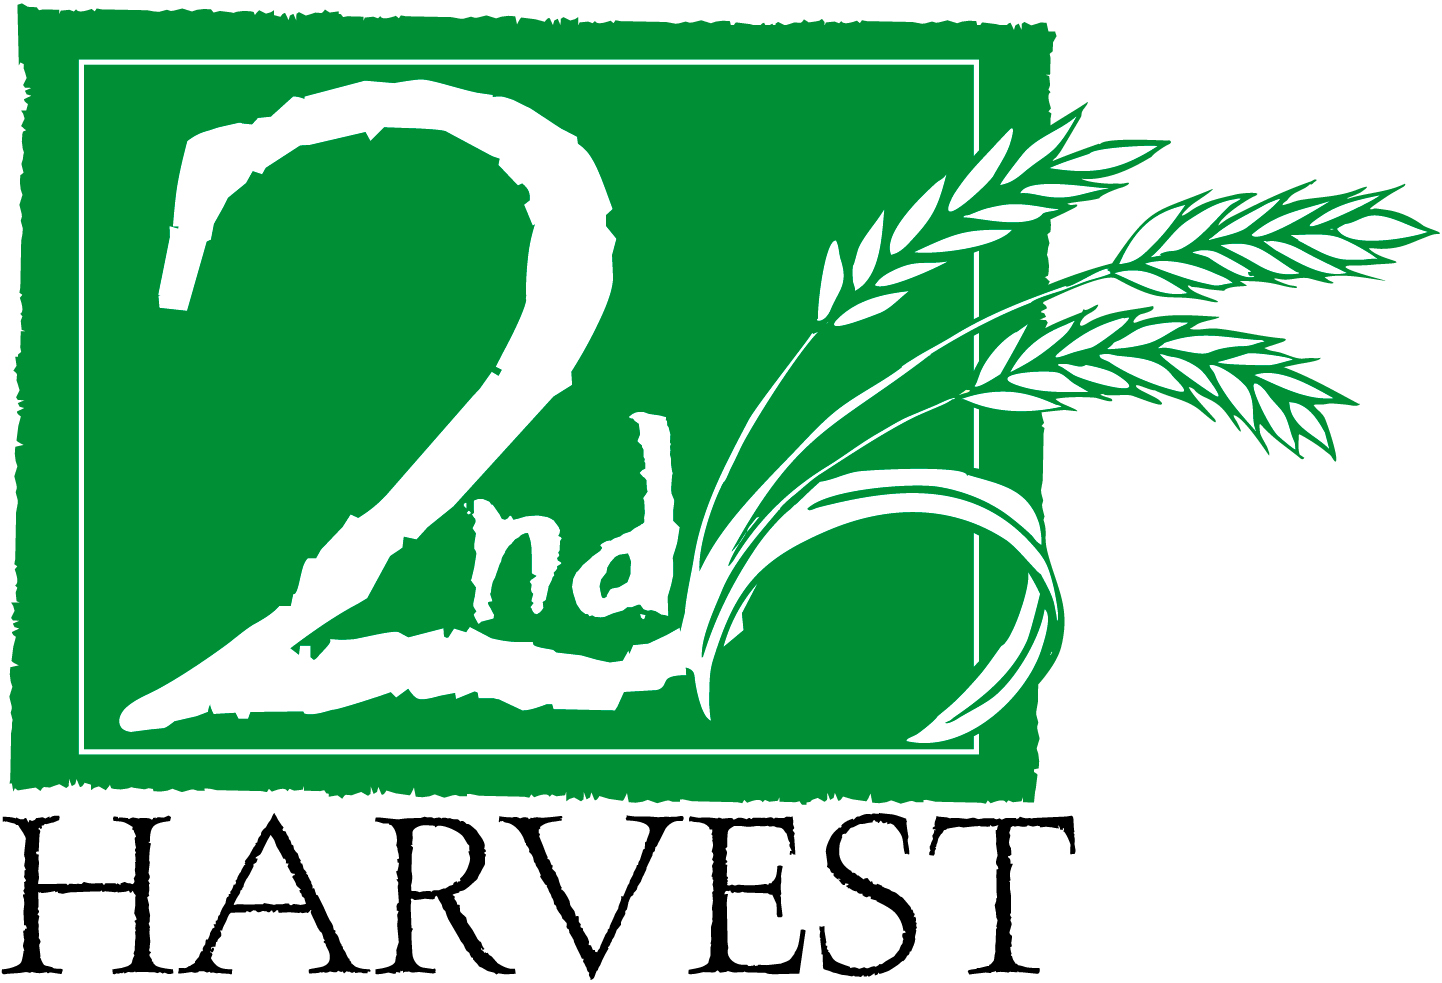 Inland Northwest 2nd Harvest logo